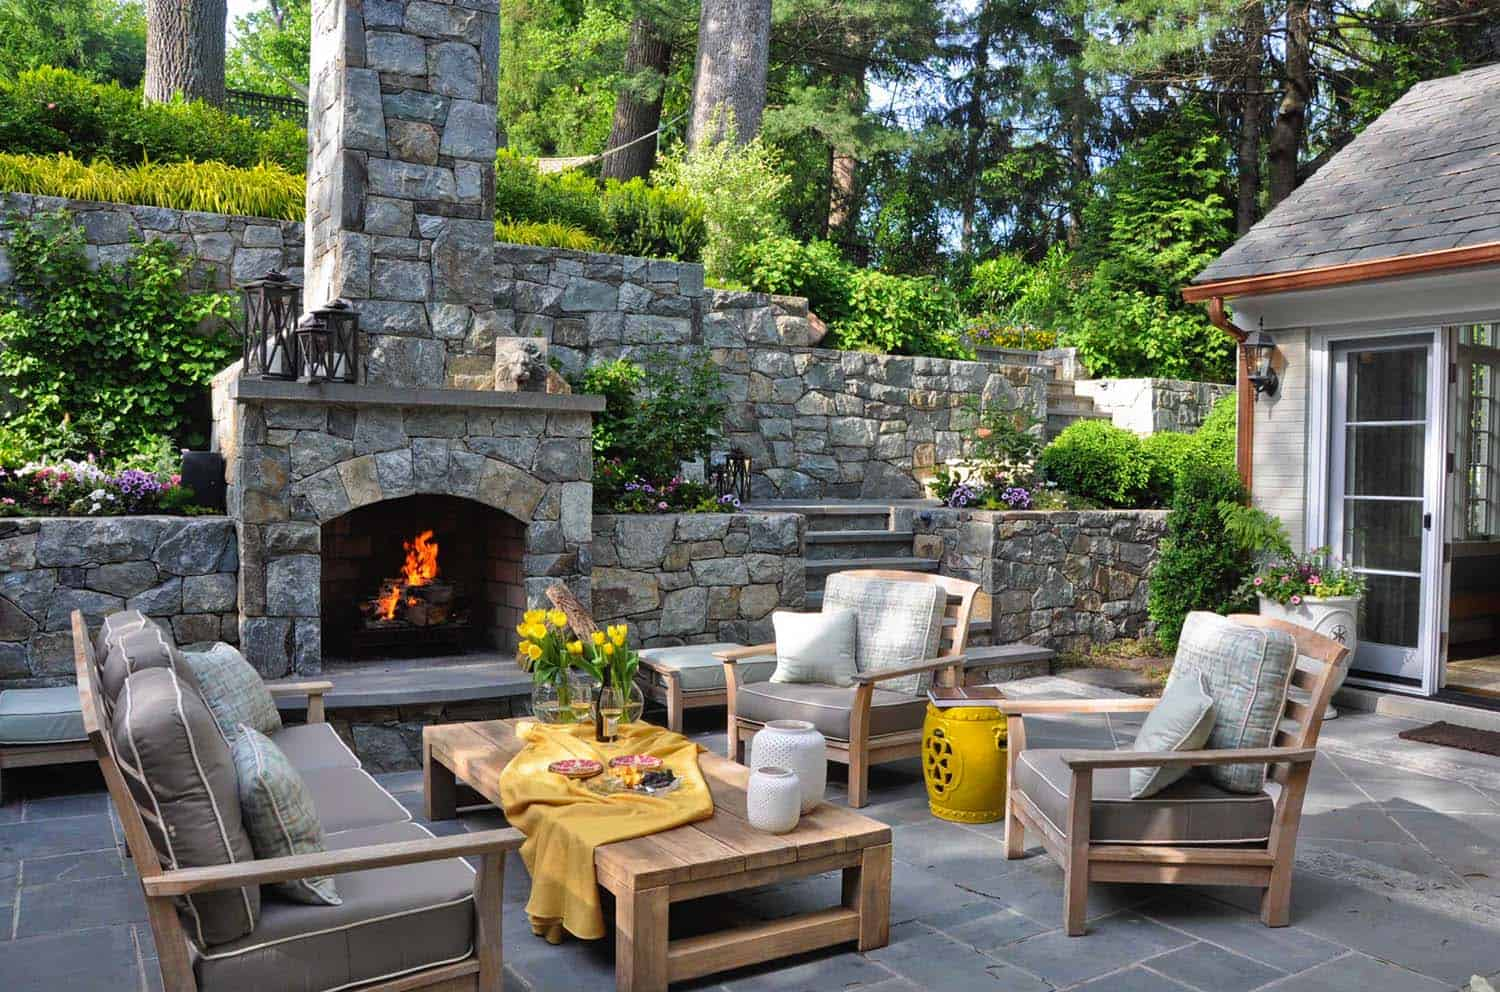 30+ Irresistible outdoor fireplace ideas that will leave ... on Outdoor Fireplaces Ideas id=30058